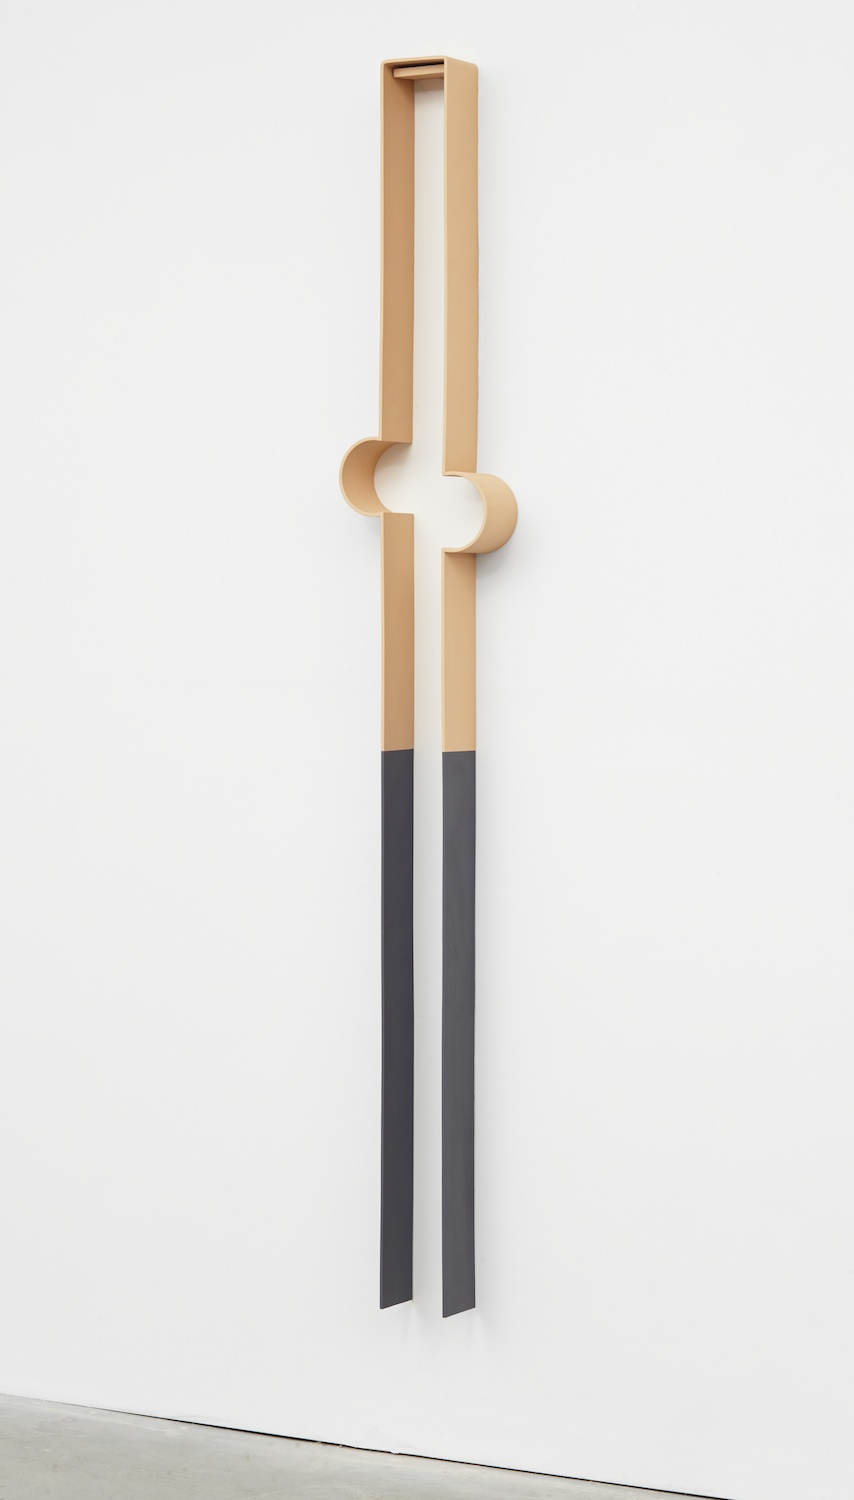 Lisa Williamson  Bump, Camel  2013 Acrylic on powder-coated steel 80h x 14w x 4d in LW119